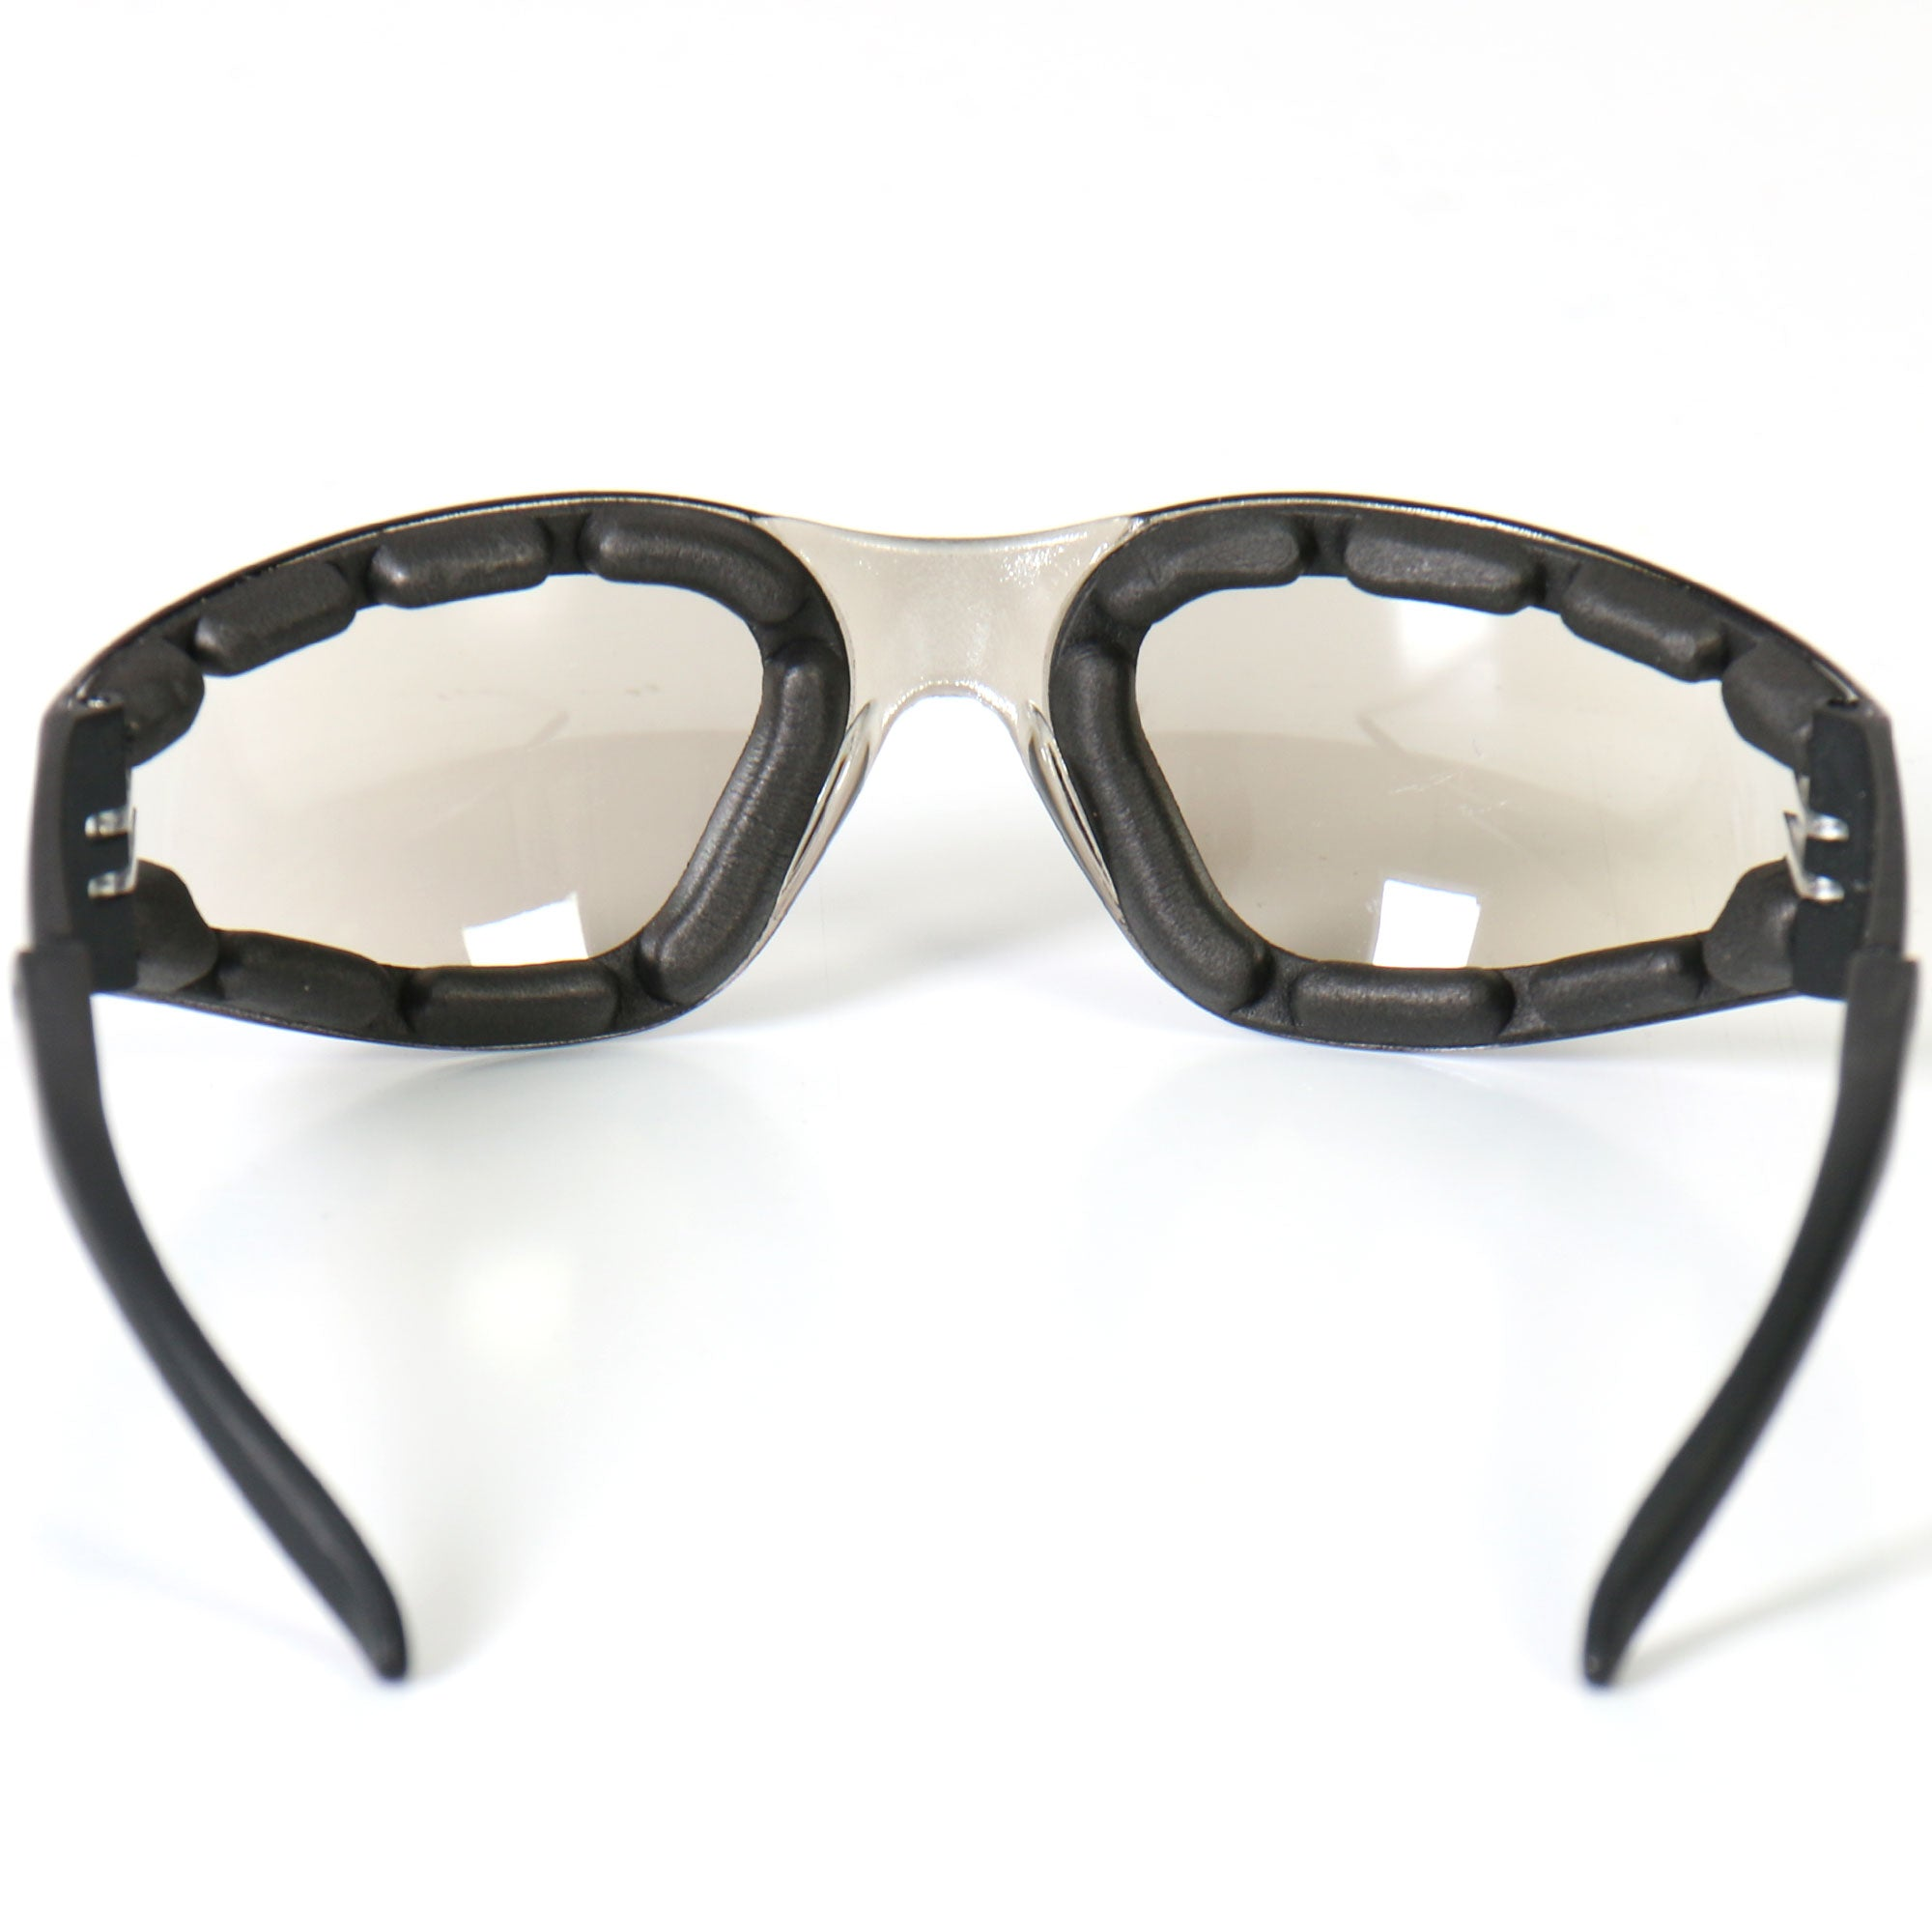 Hot Leathers Rider Plus Sunglasses w/Clear Mirror Lenses